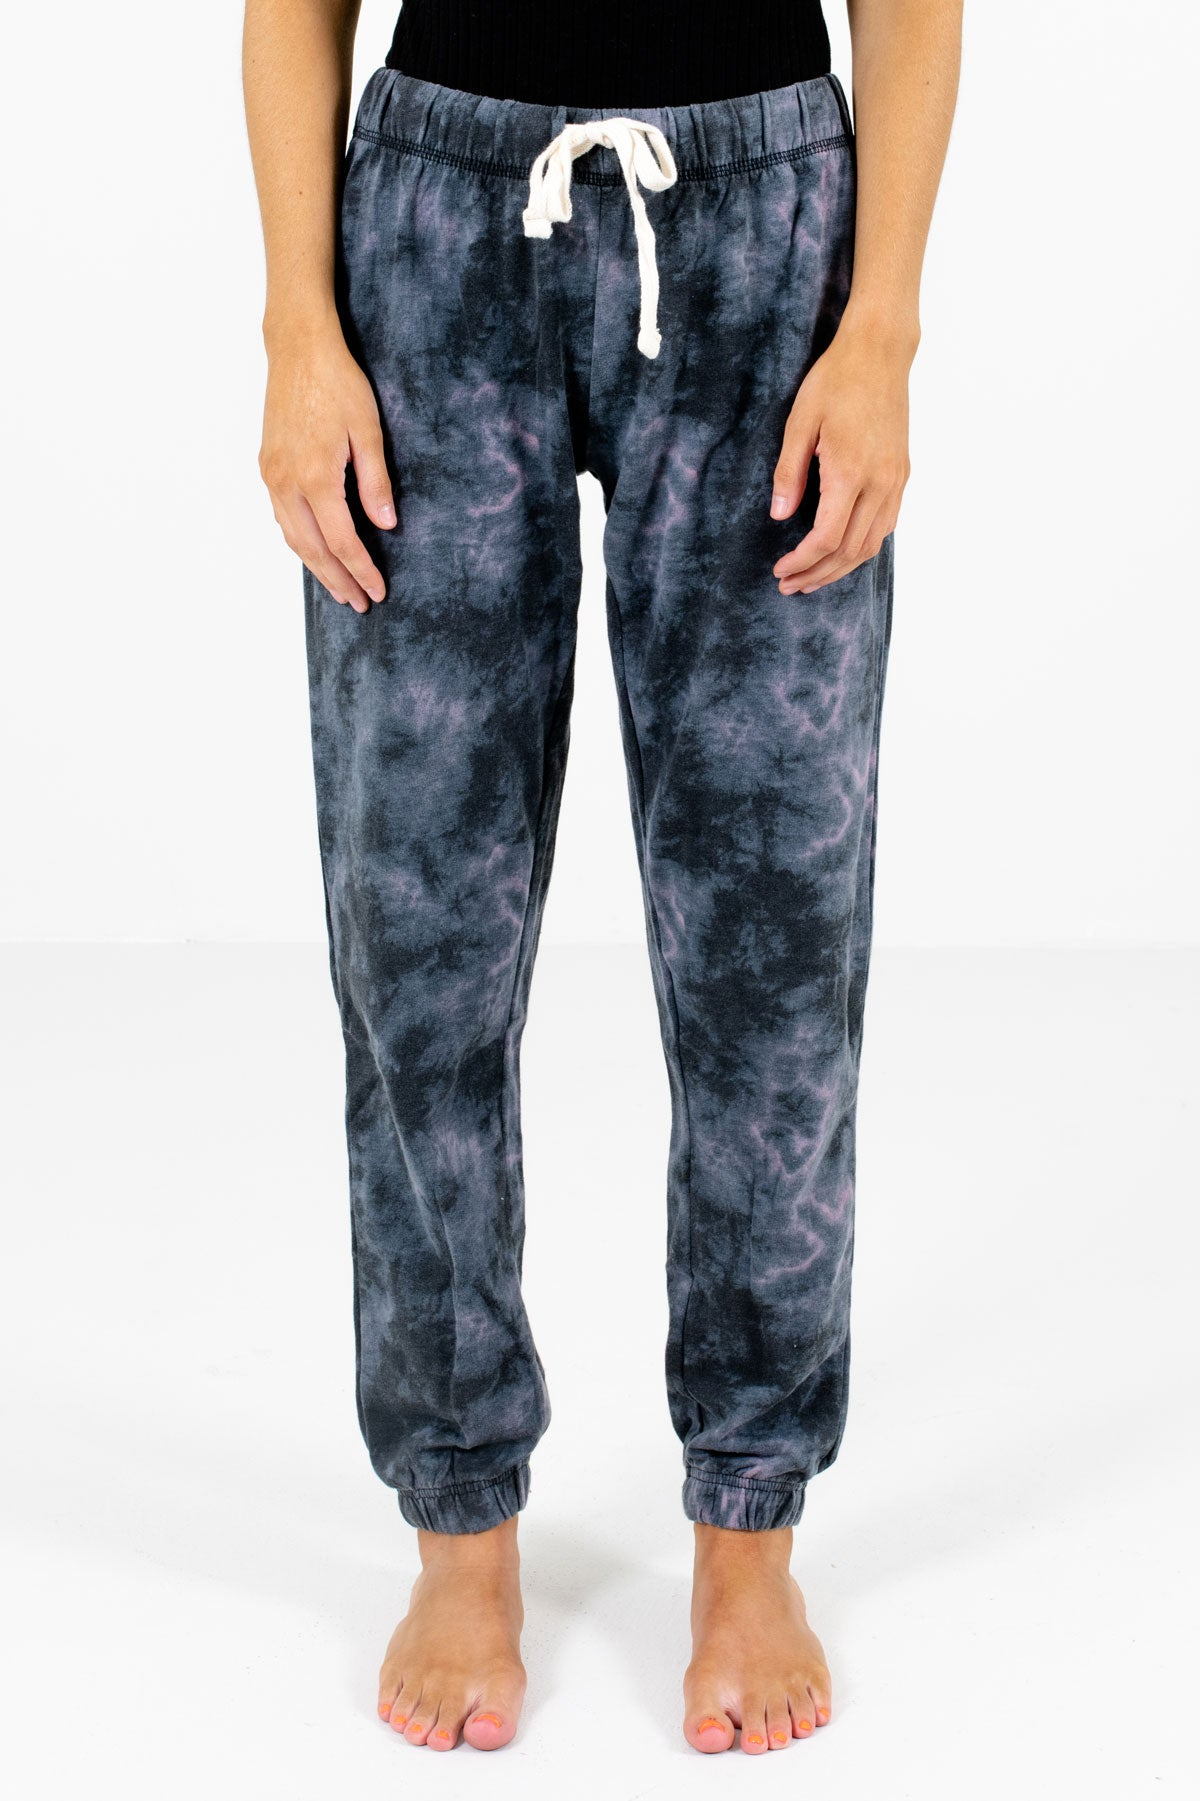 Charcoal Gray Tie-Dye Print Boutique Joggers for Women